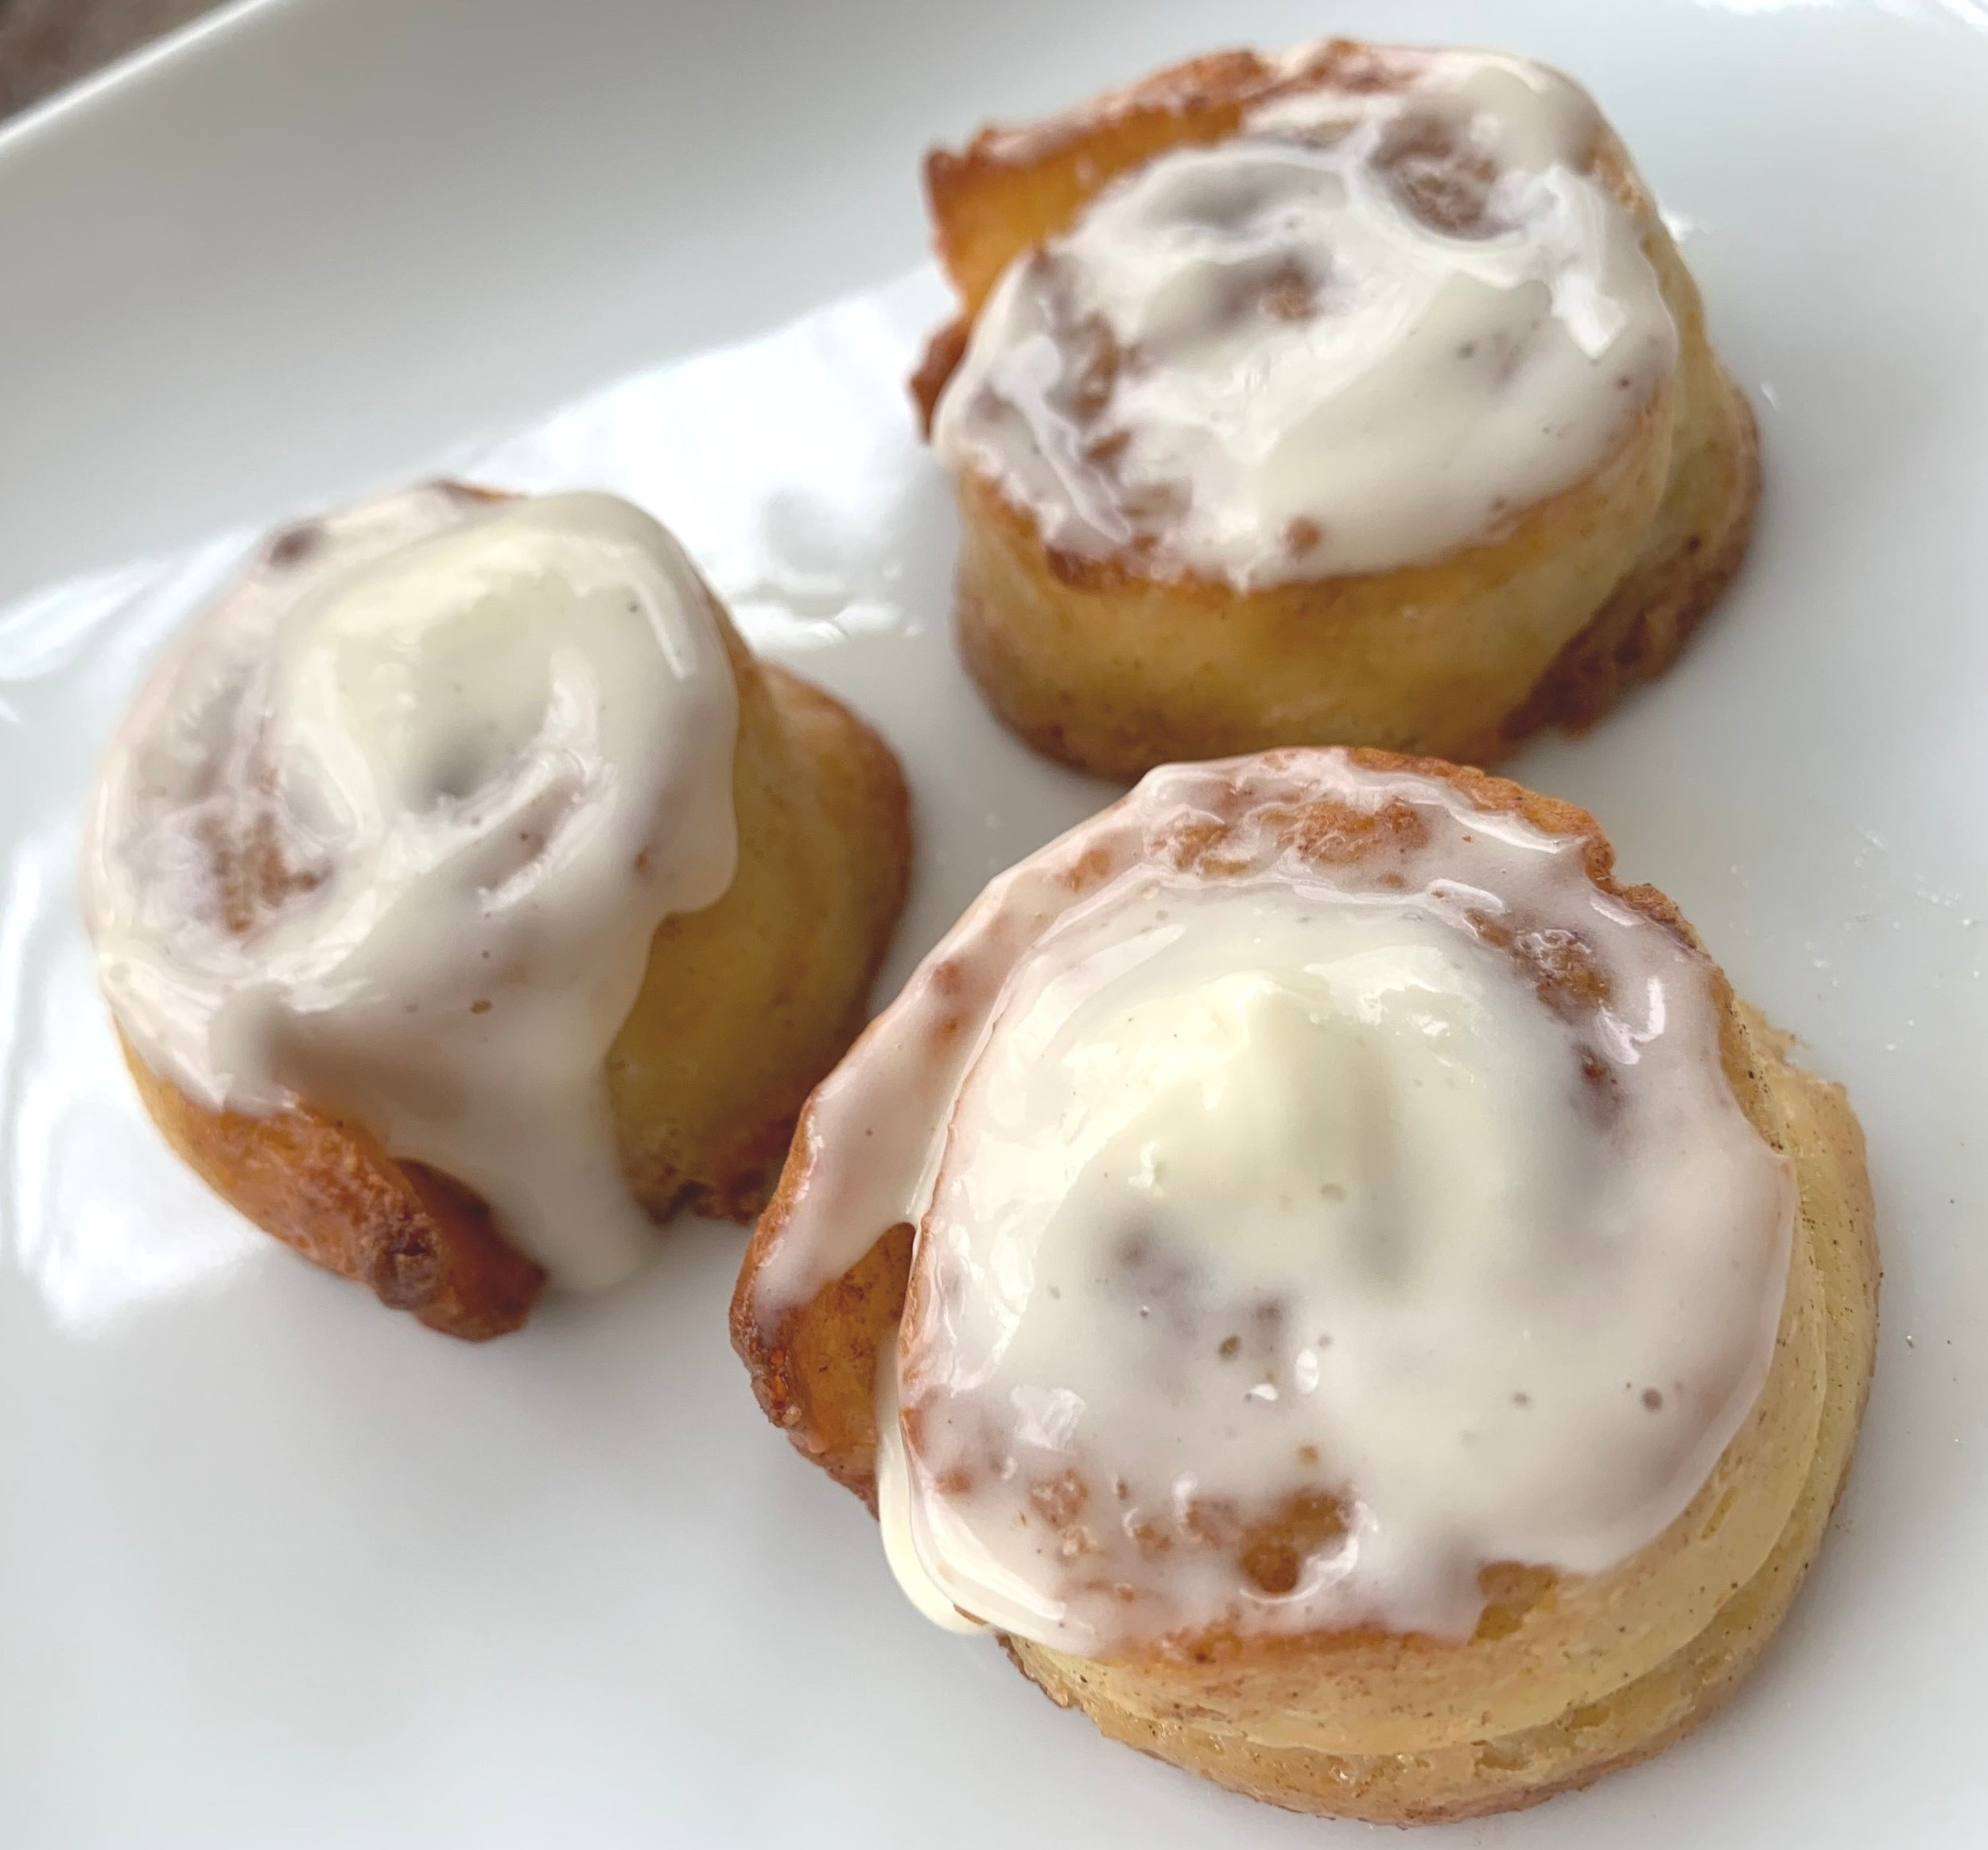 9. Top the rolls with the icing and enjoy! -